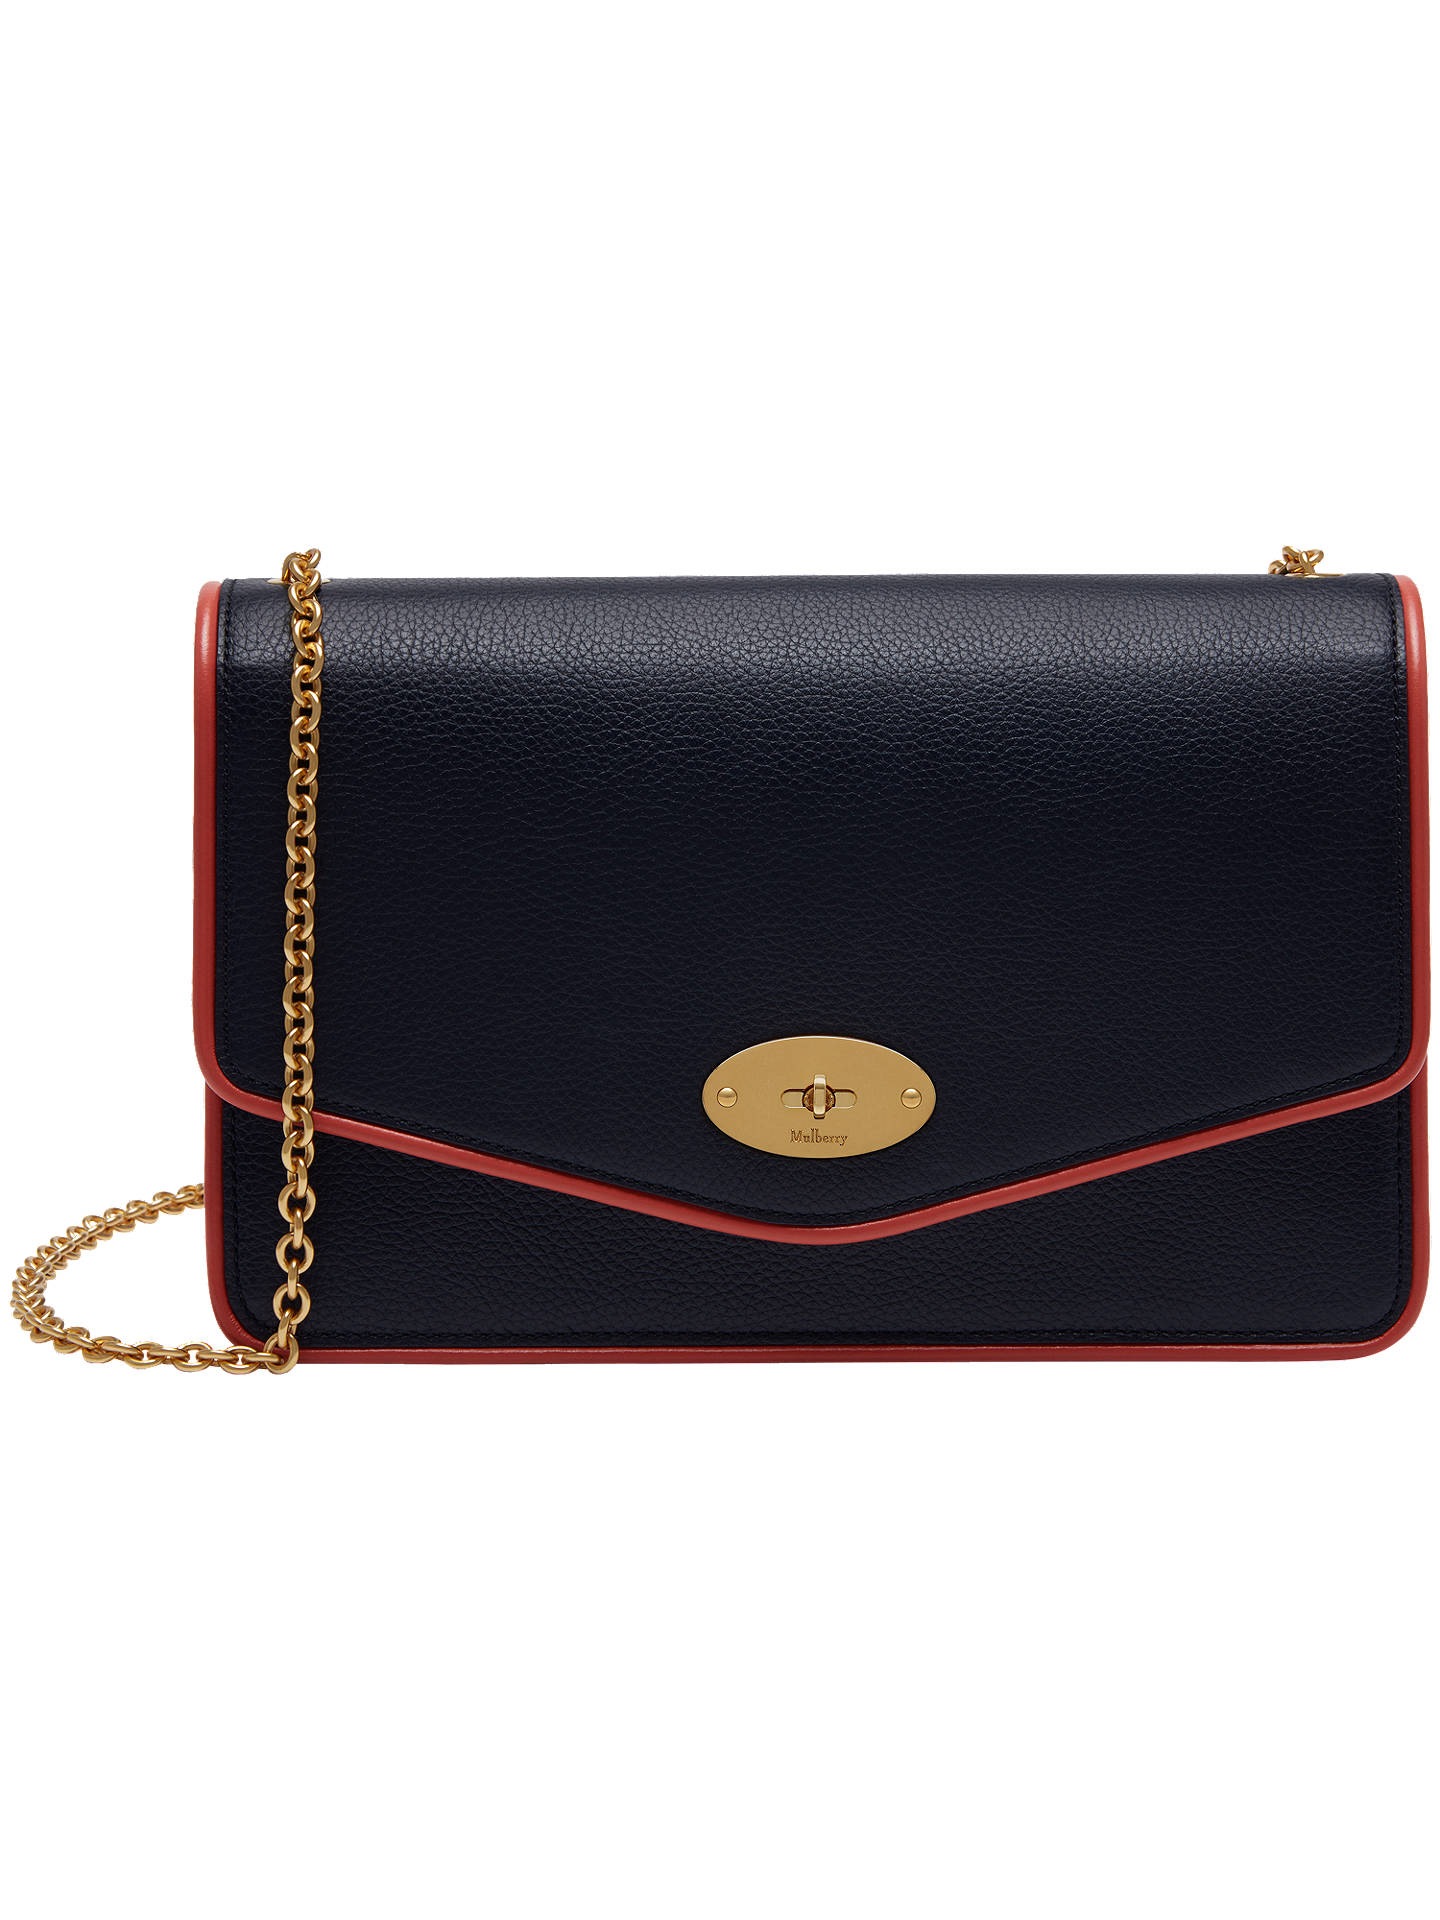 Mulberry Darley Small Classic Grain Leather Piping Cross Body Bag ... 41f755d8c5fdc